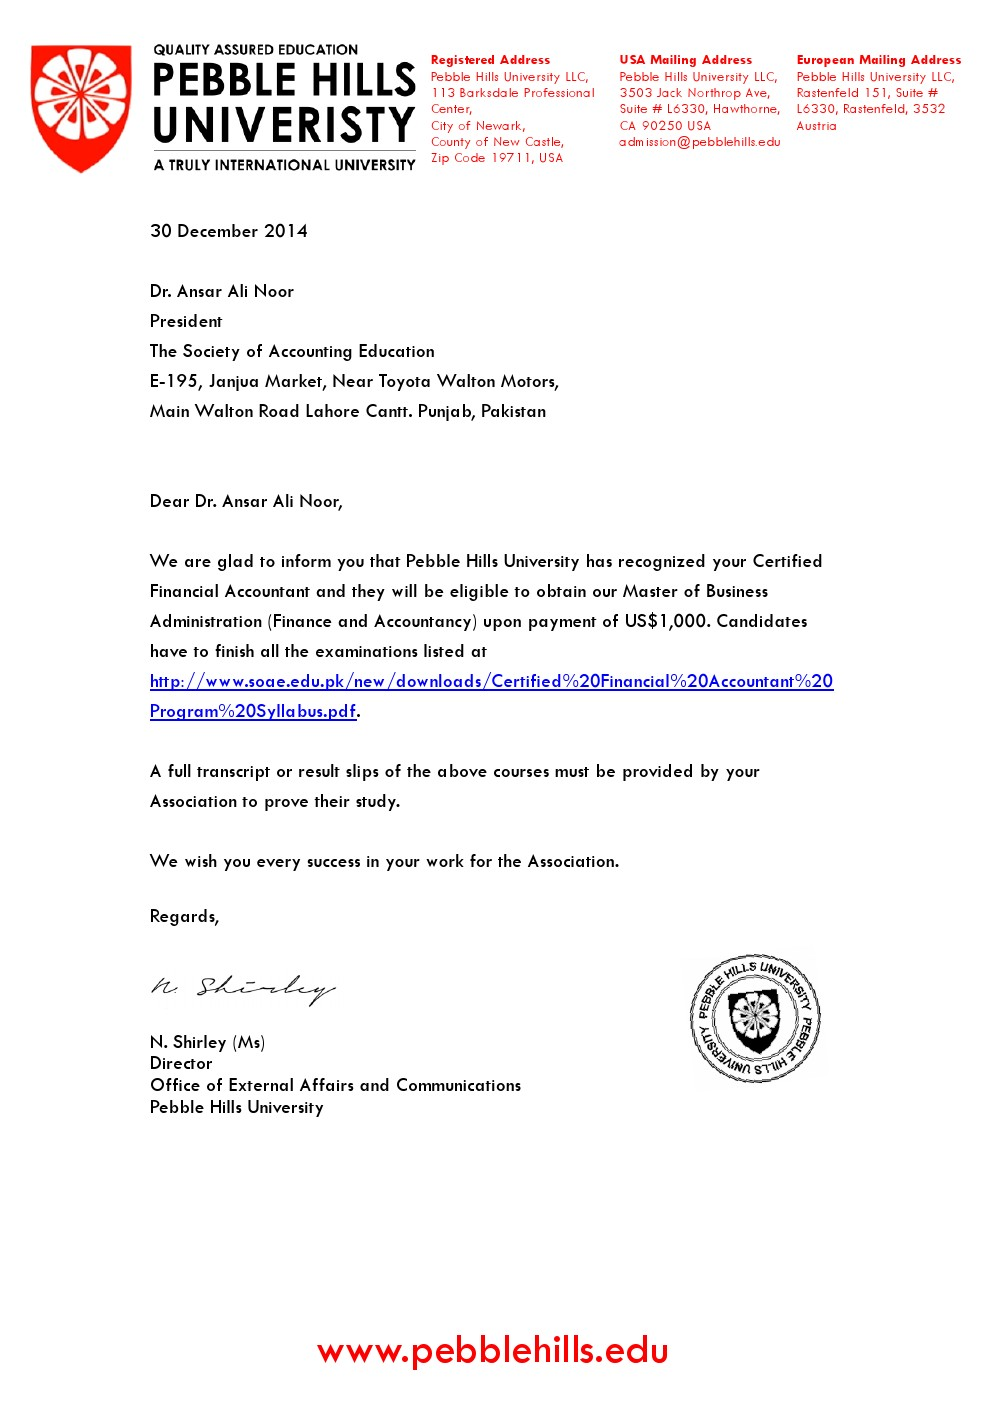 PHU Recogntion letter to SOAE